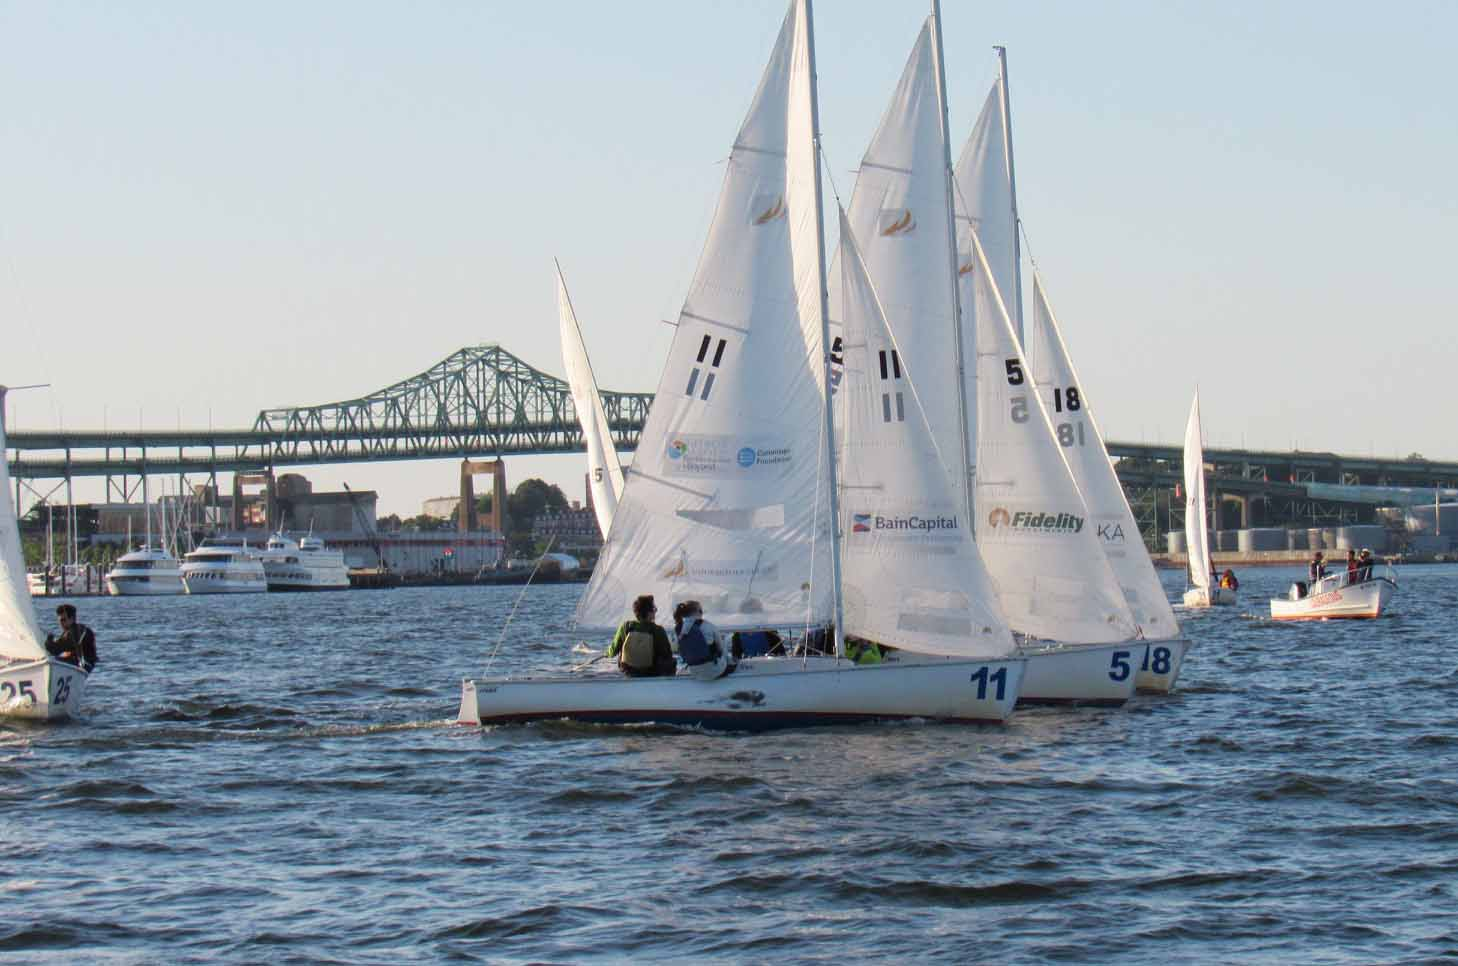 Bain Capital Wins Courageous Sailing Corporate Cup for Second Year in a Row